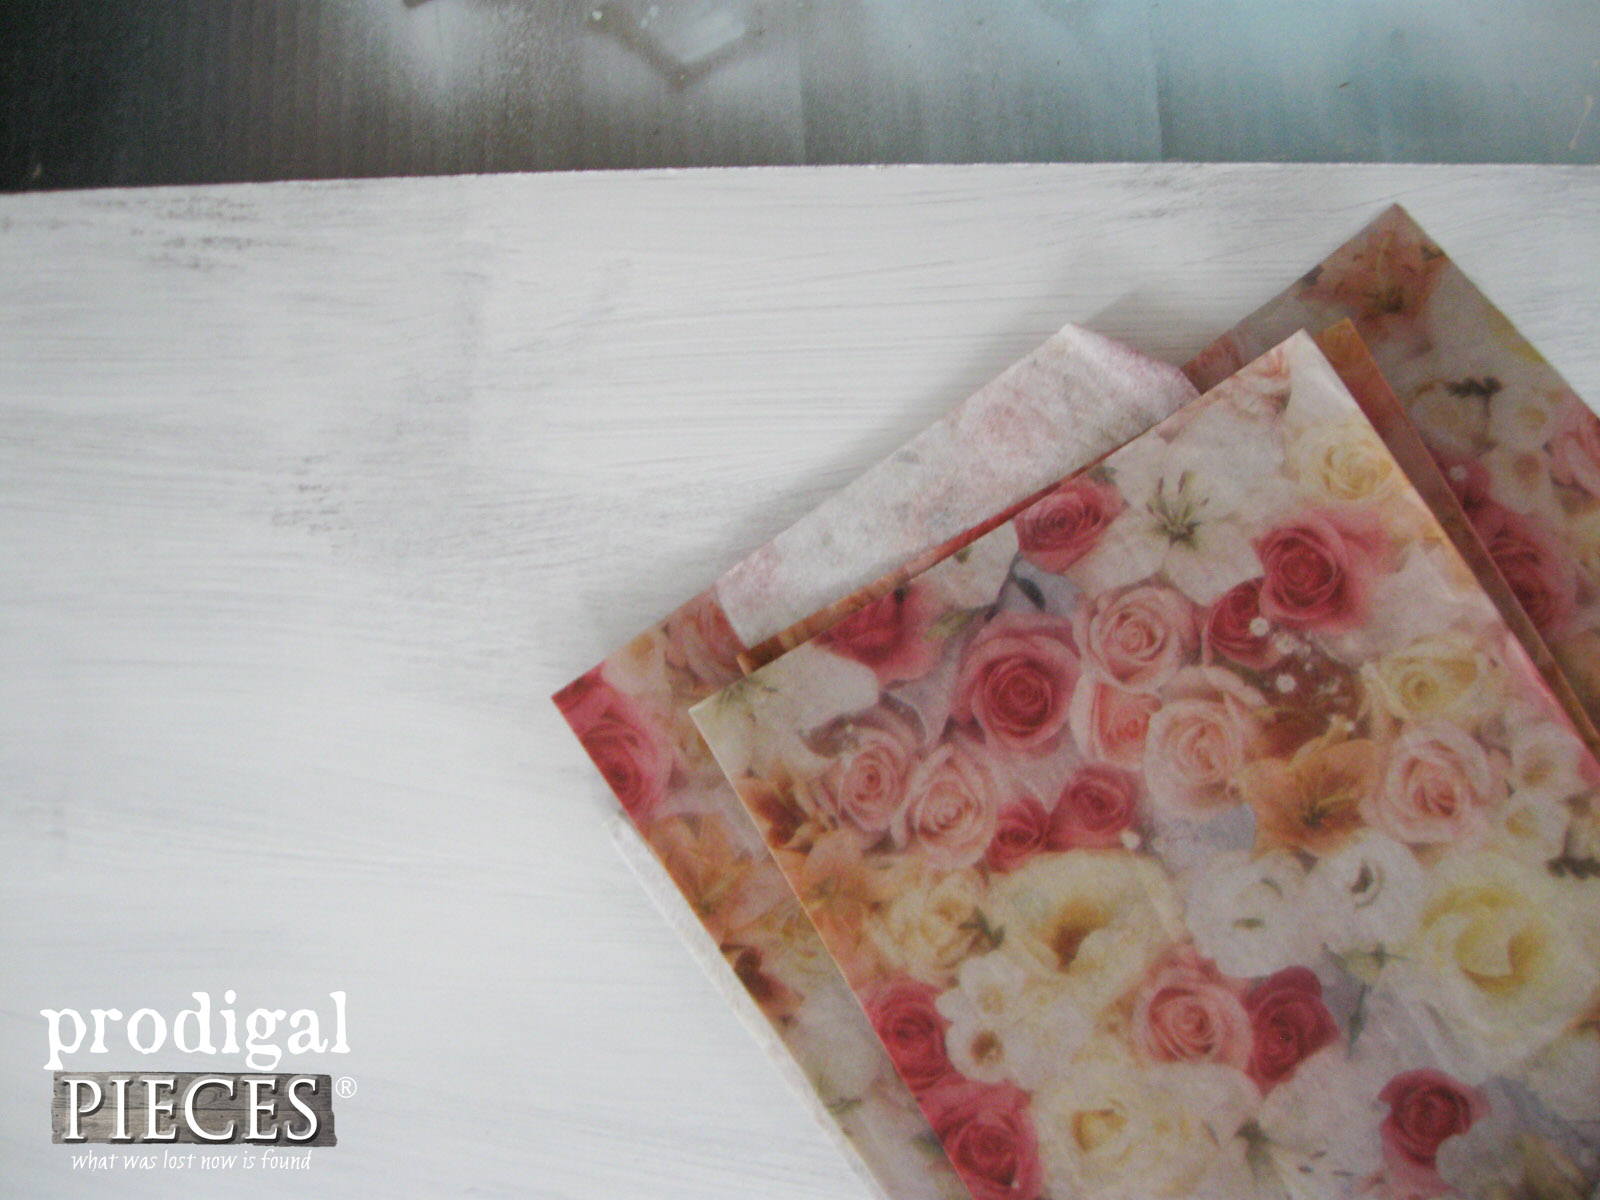 Decoupage Materials for Repurposed Wall Art by Prodigal Pieces | prodigalpieces.com